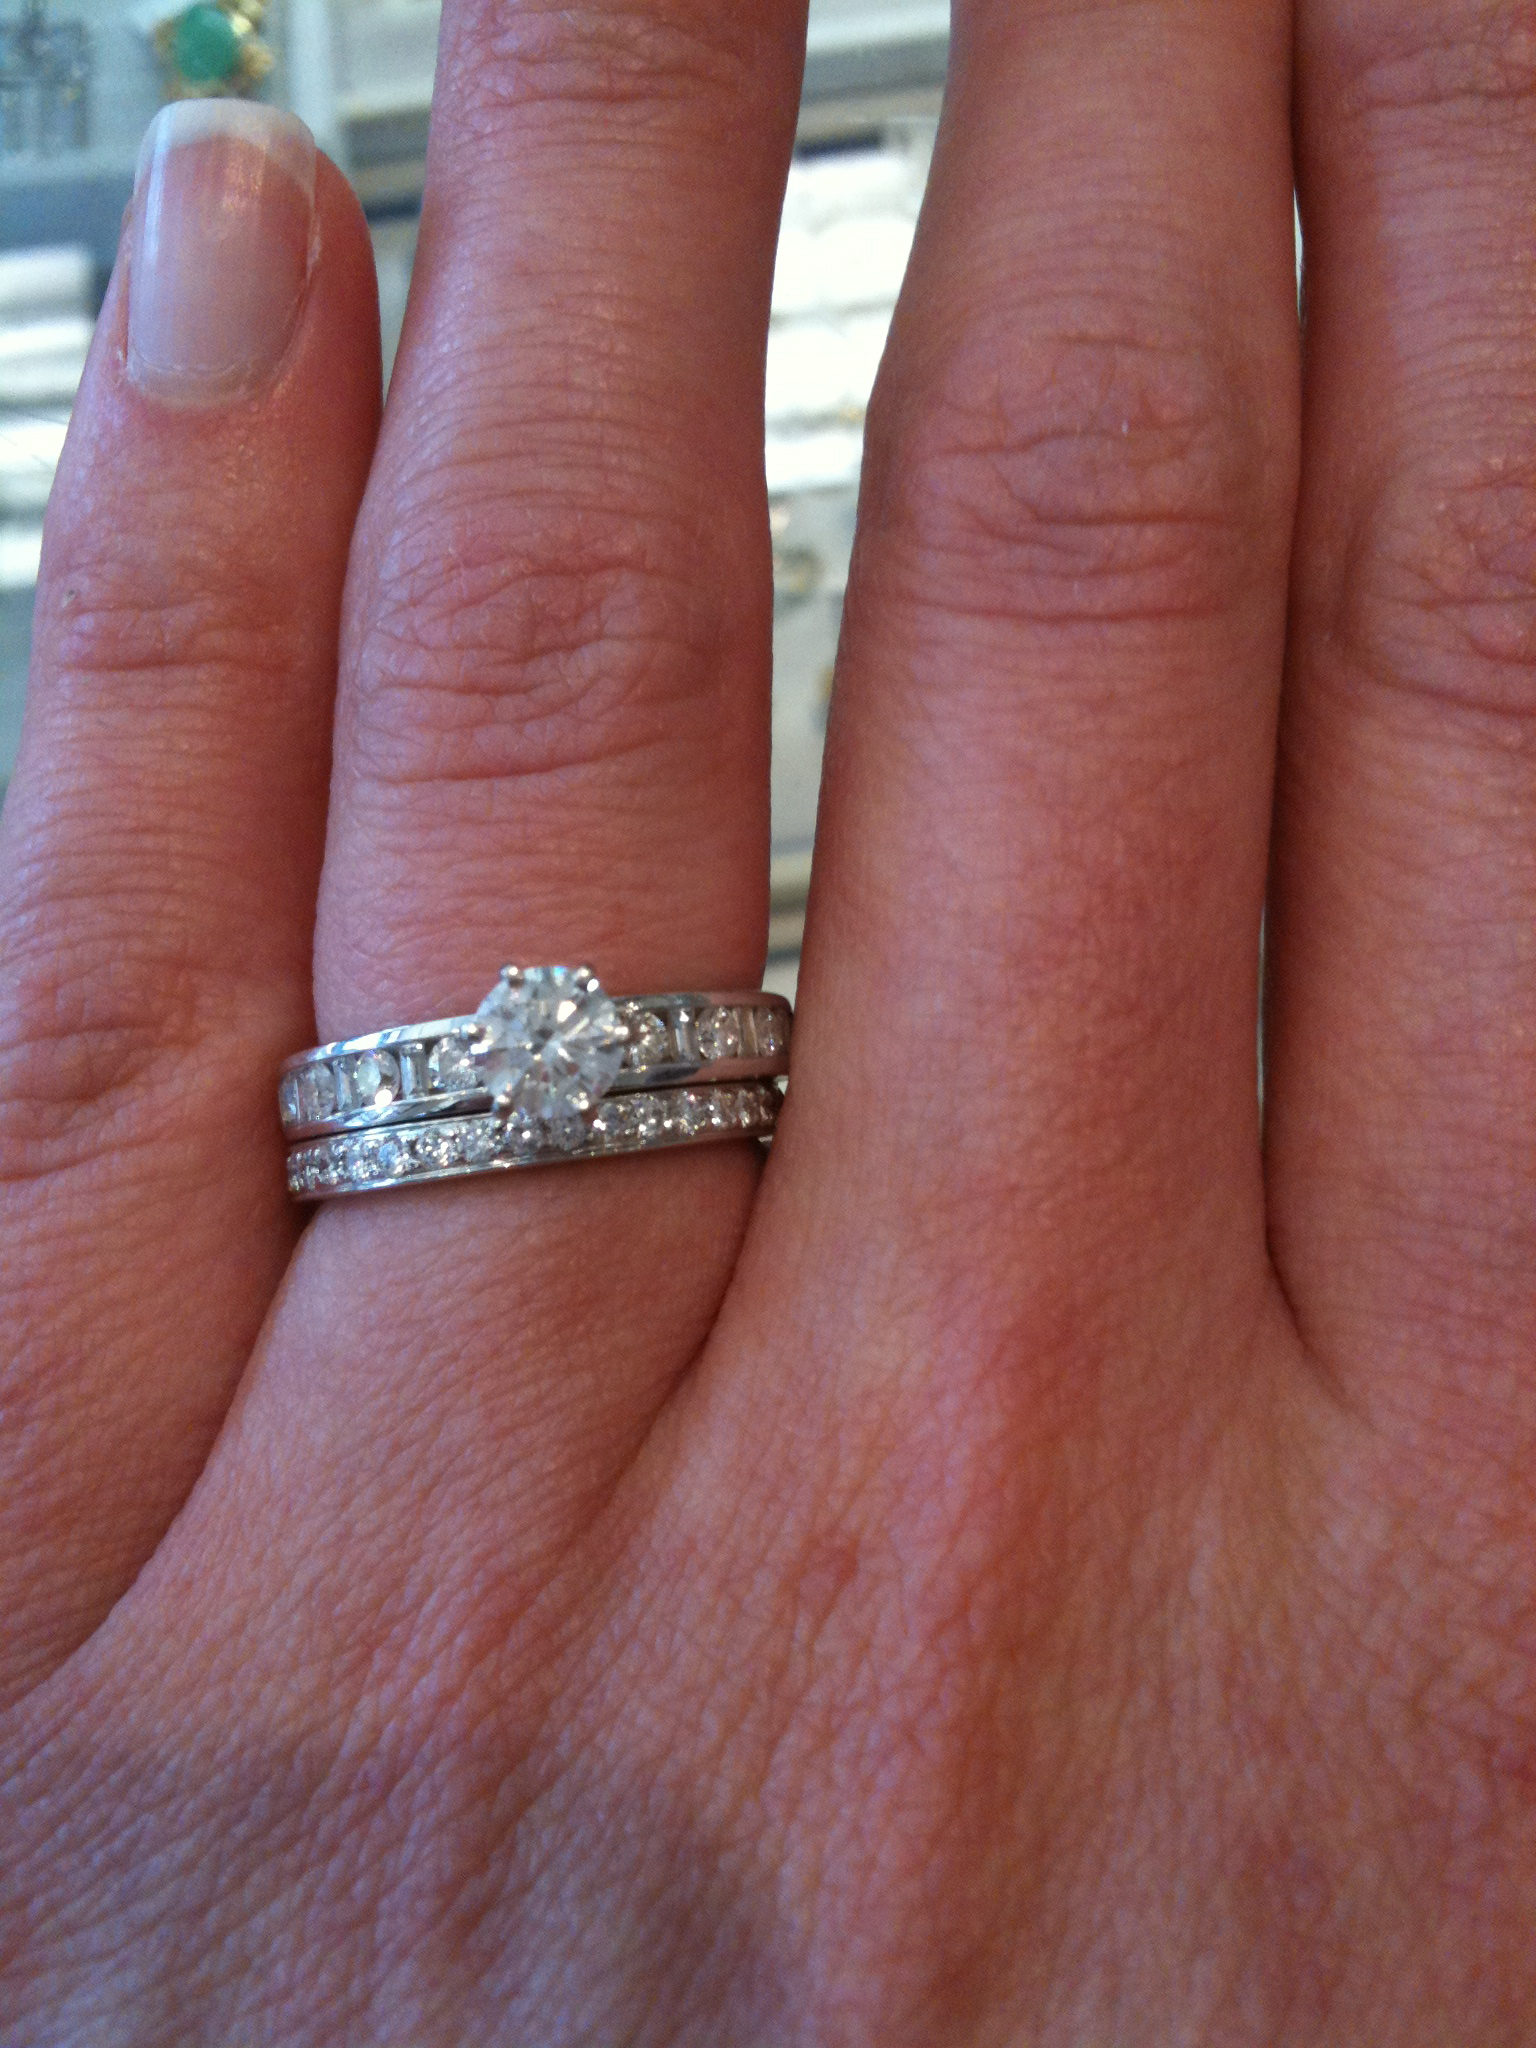 My Engagement: Were Find Wedding Rings At Websimilar.org